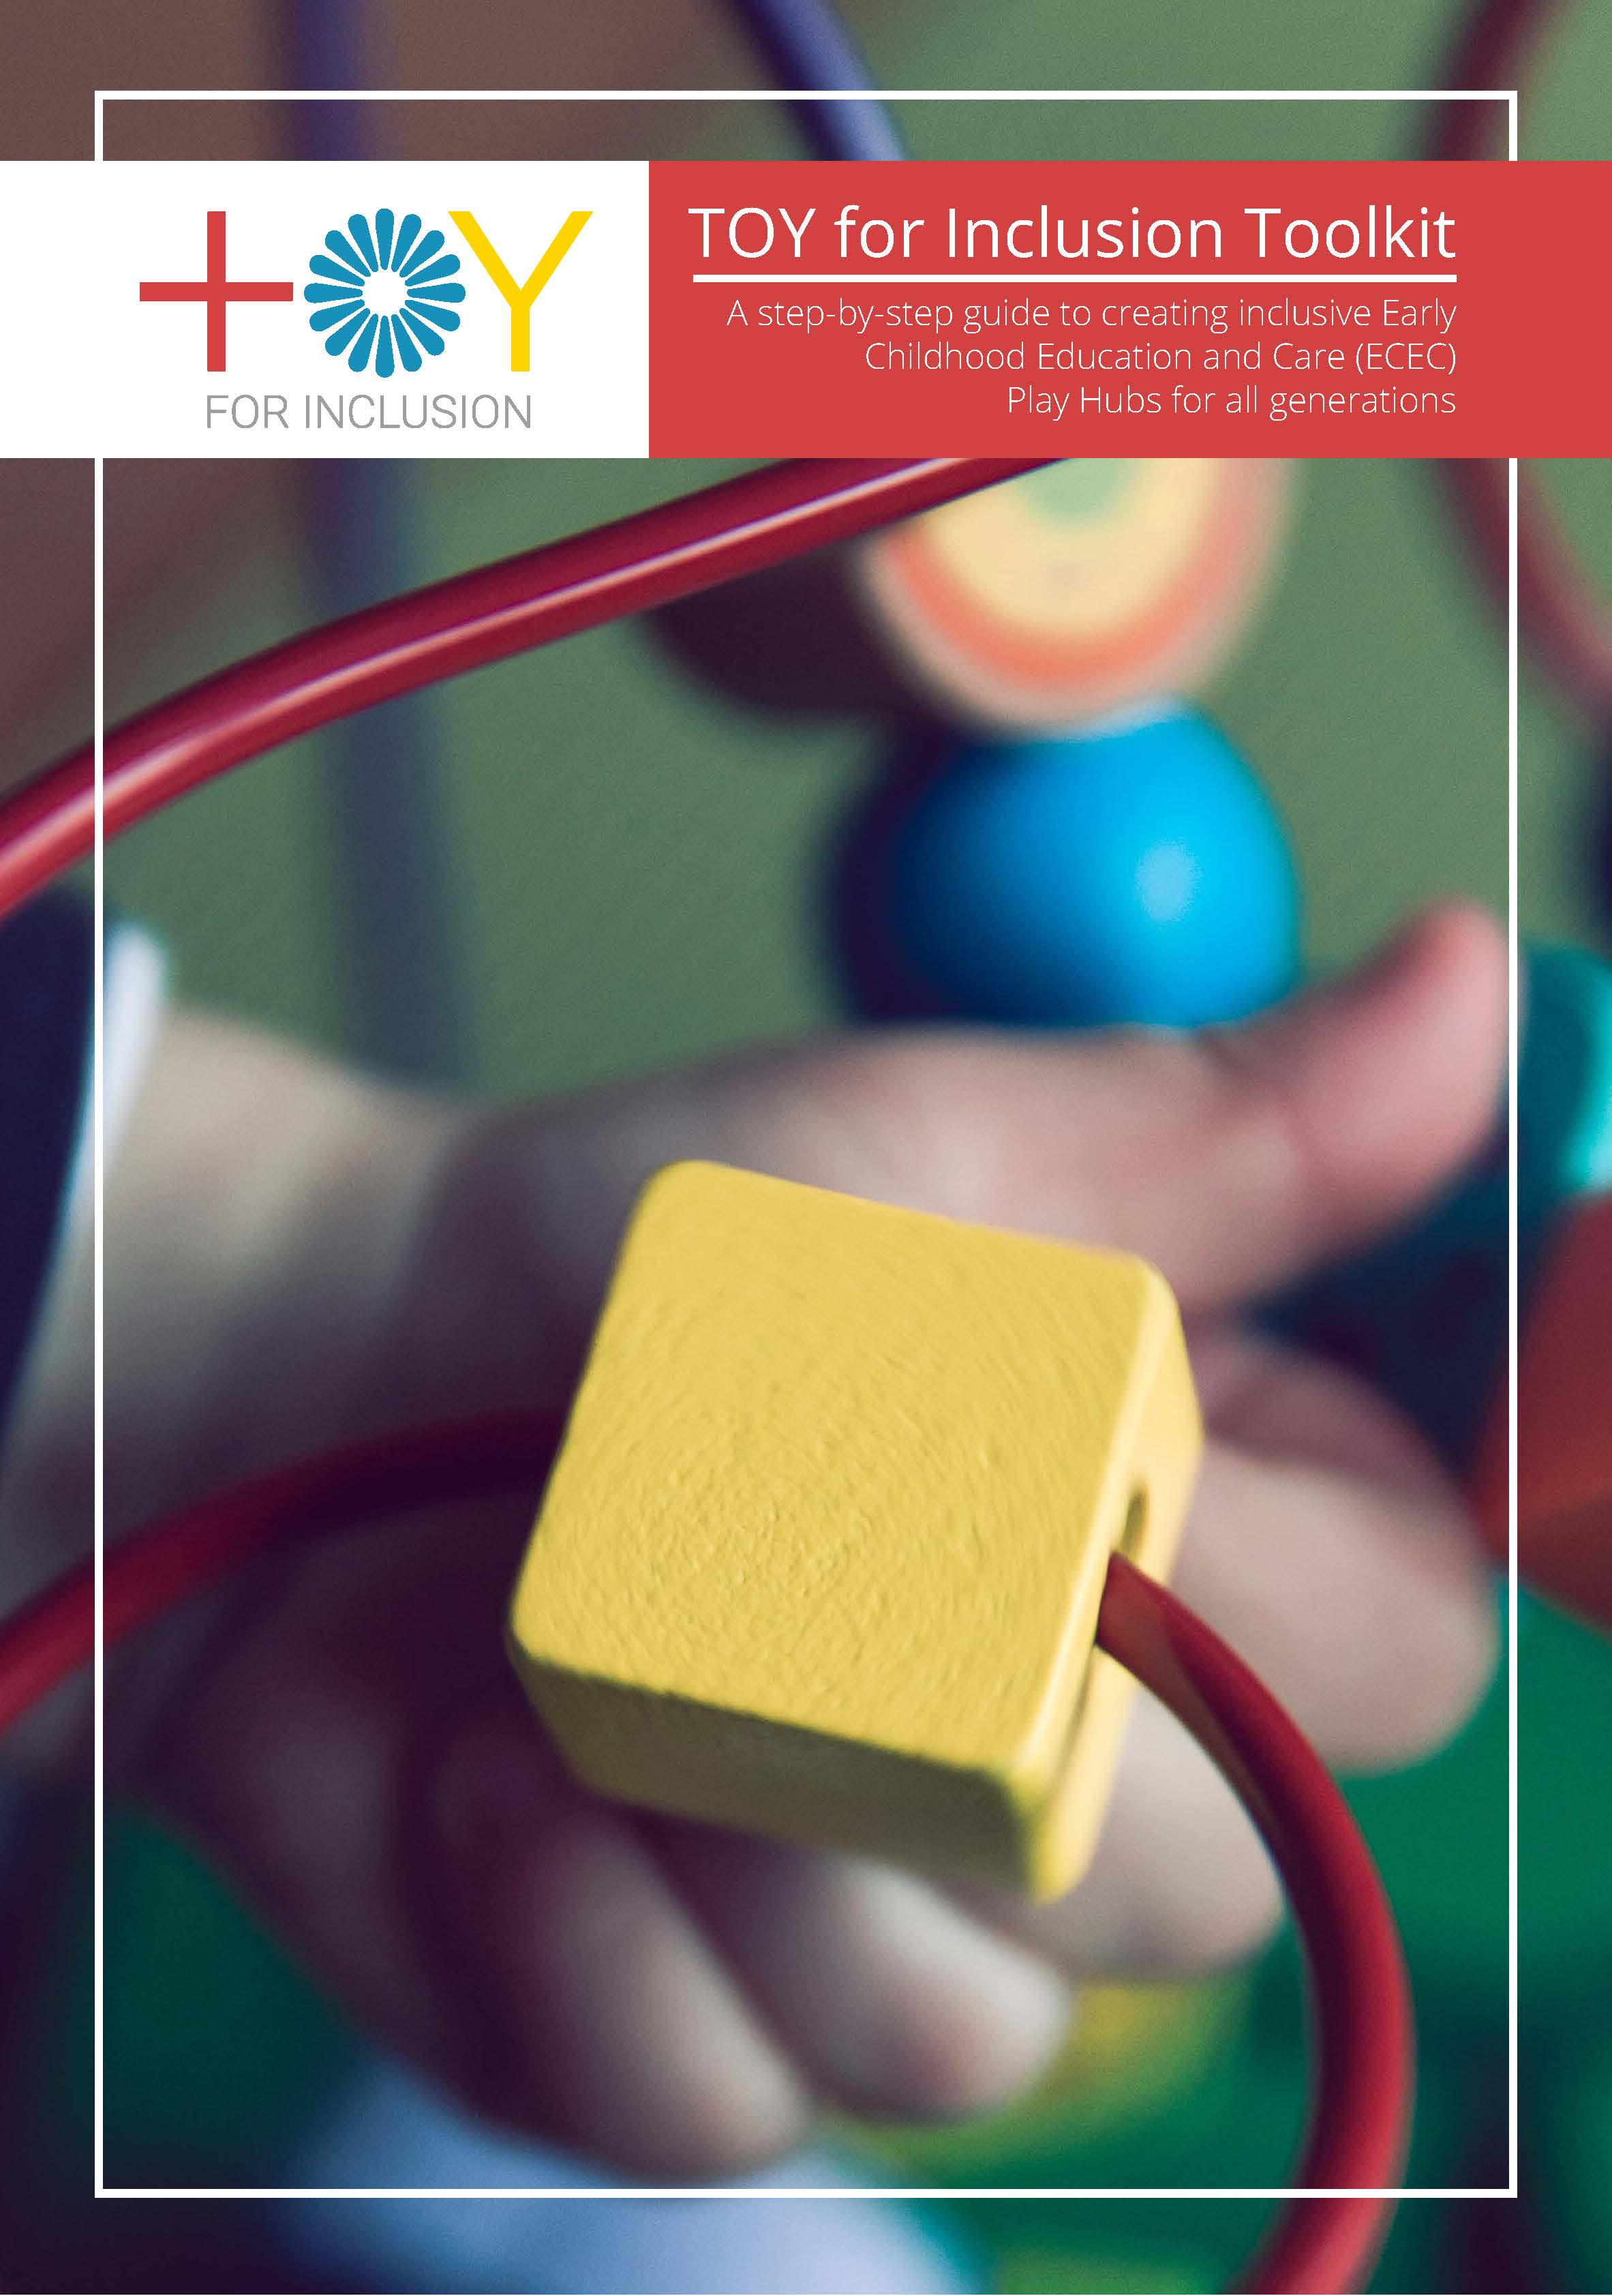 TOY4 inclusion toolkit